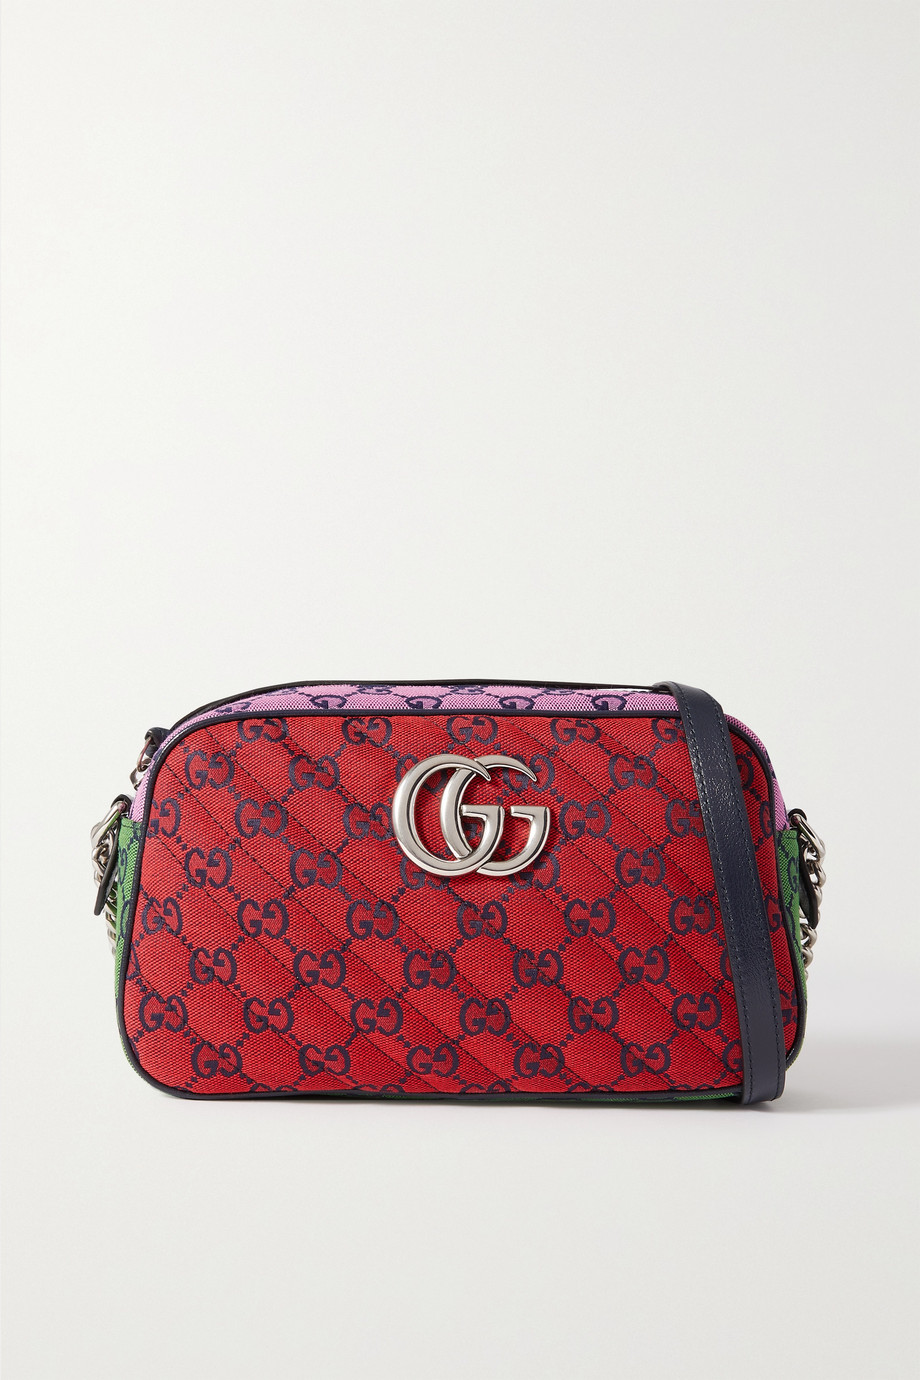 Gucci GG Marmont Camera 2.0 small quilted logo-jacquard shoulder bag